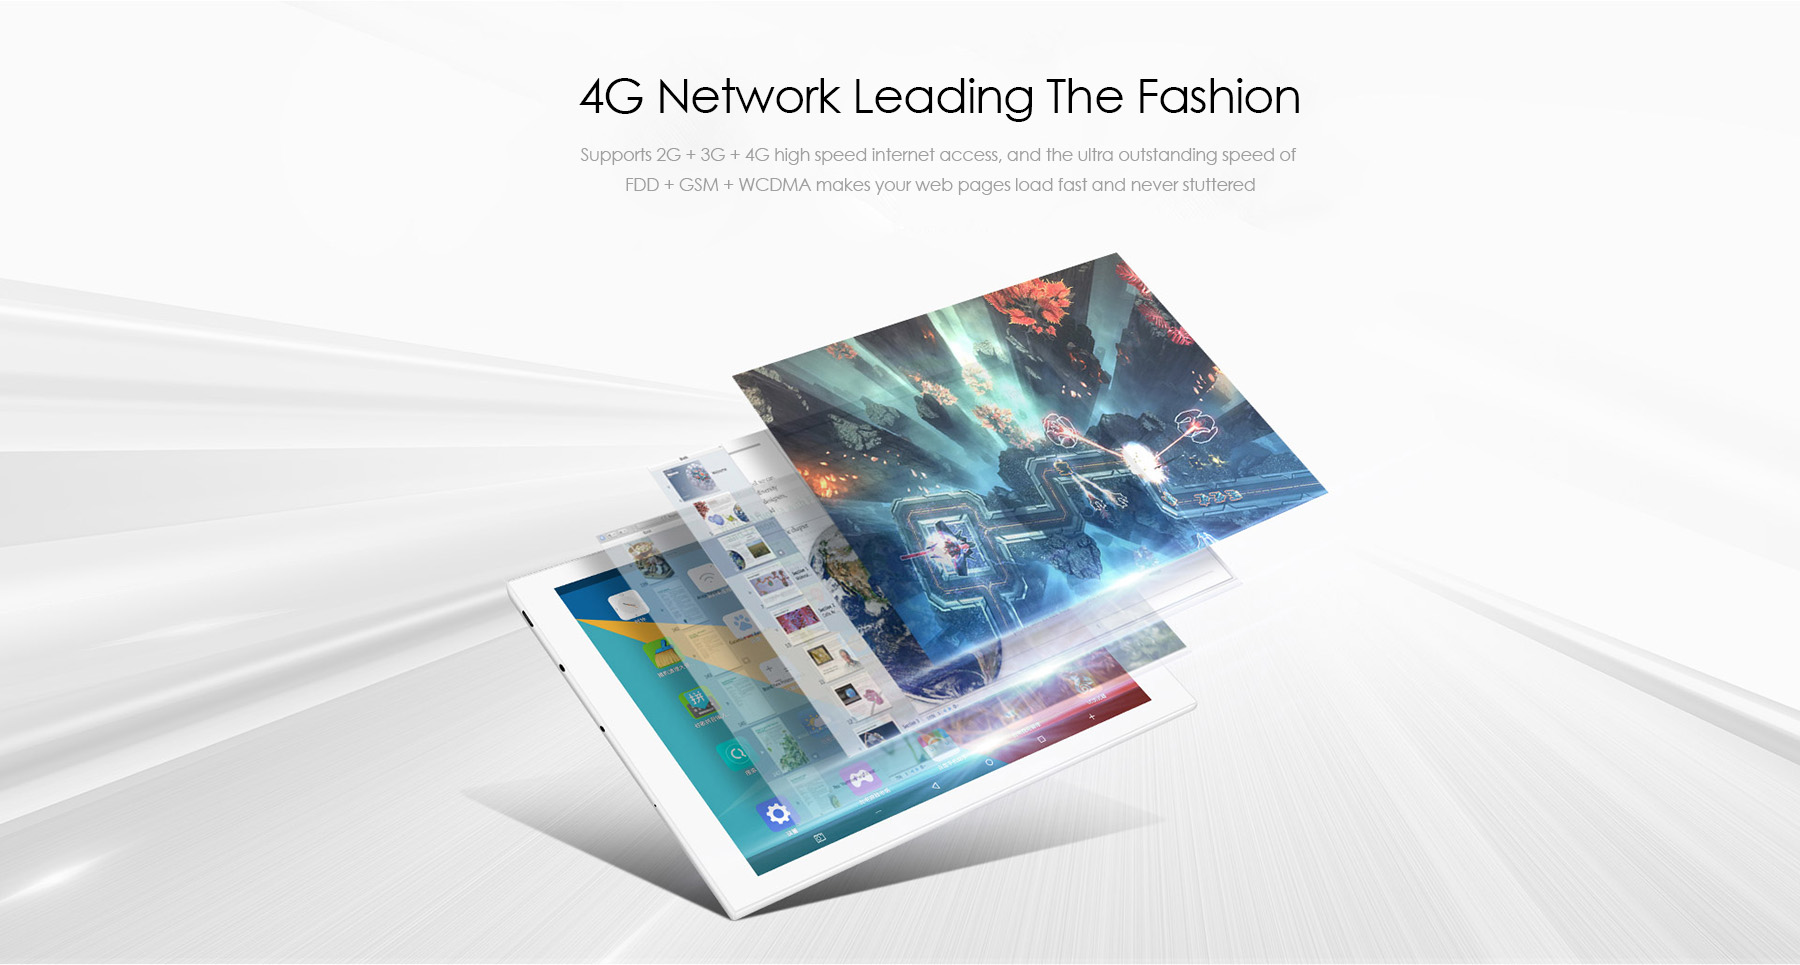 Teclast T98 4G Android 5.1 Phone Tablet PC MTK8735P Quad Core 1.0GHz 10.1 inch Screen 1GB RAM 16GB ROM Bluetooth 4.0 GPS Dual WiFi